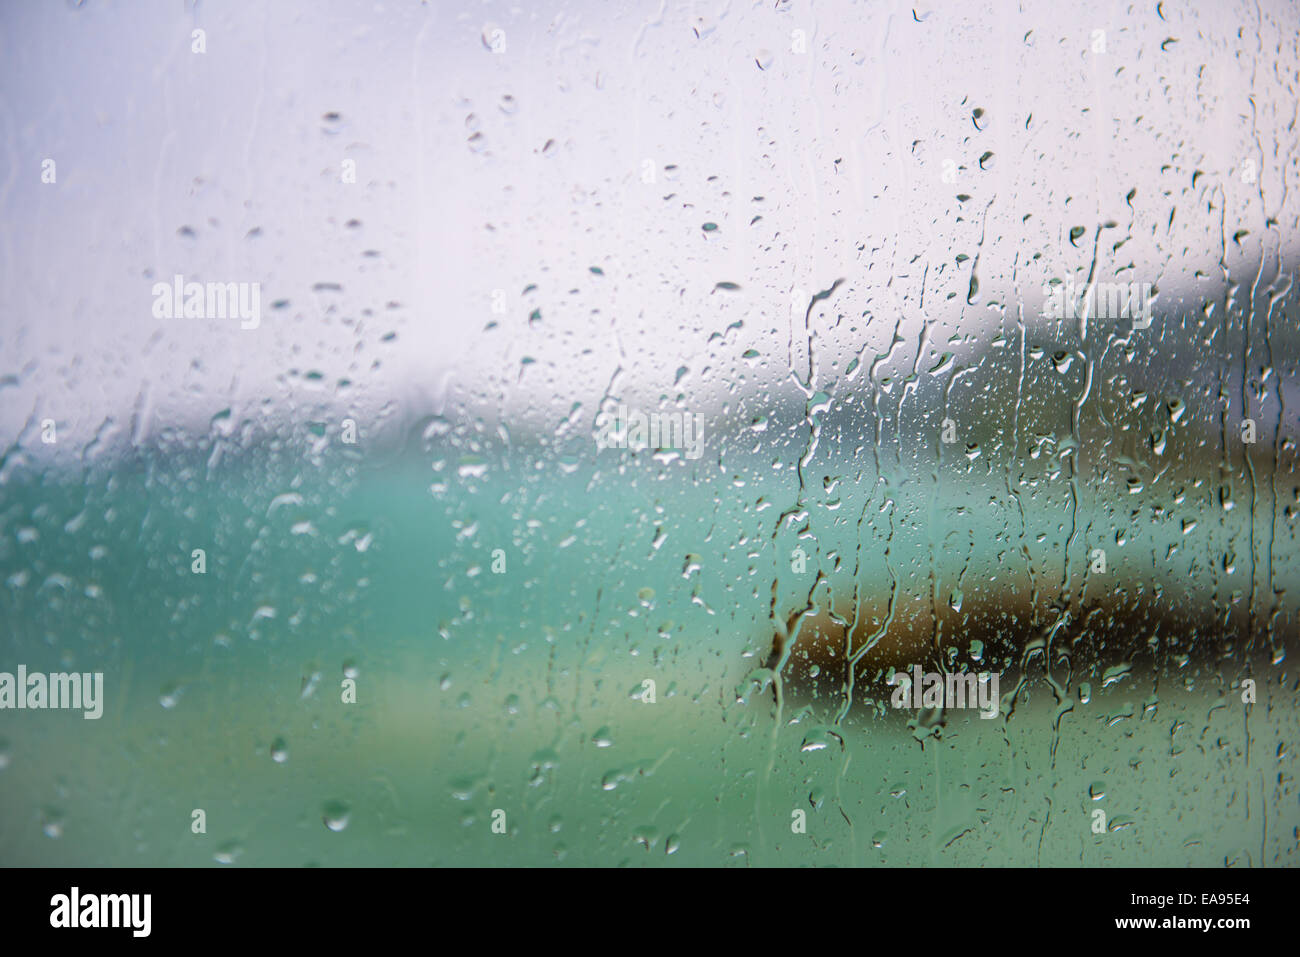 blurred view of the lake seen through a window with sharp drops on a rainy day - Stock Image